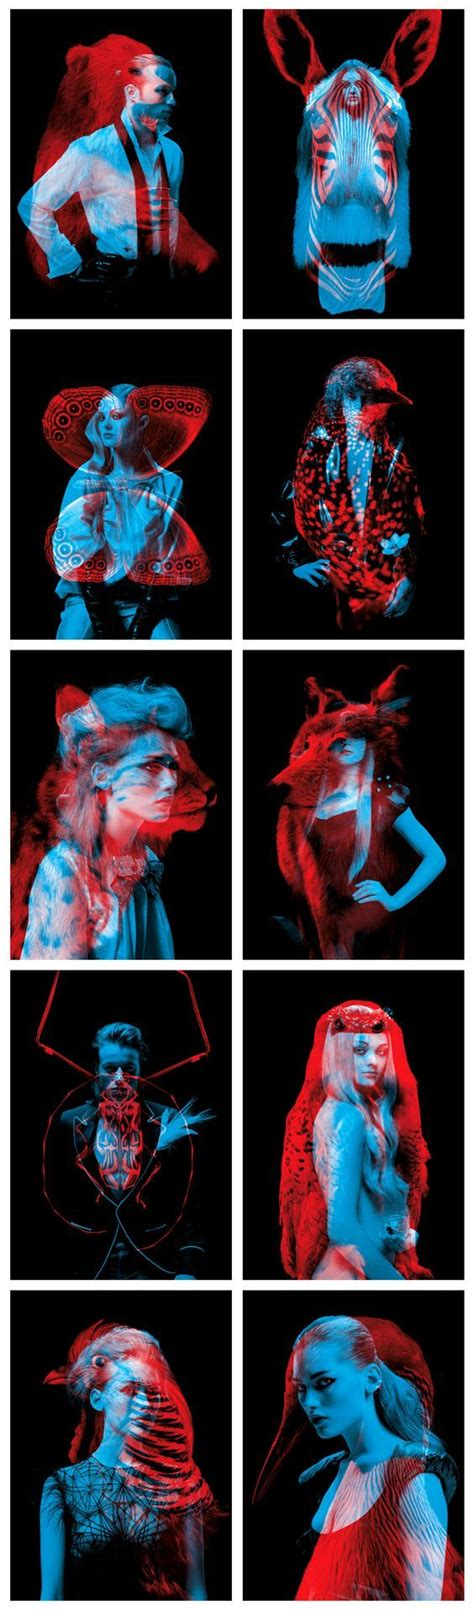 multiple personality disorder images  pinterest